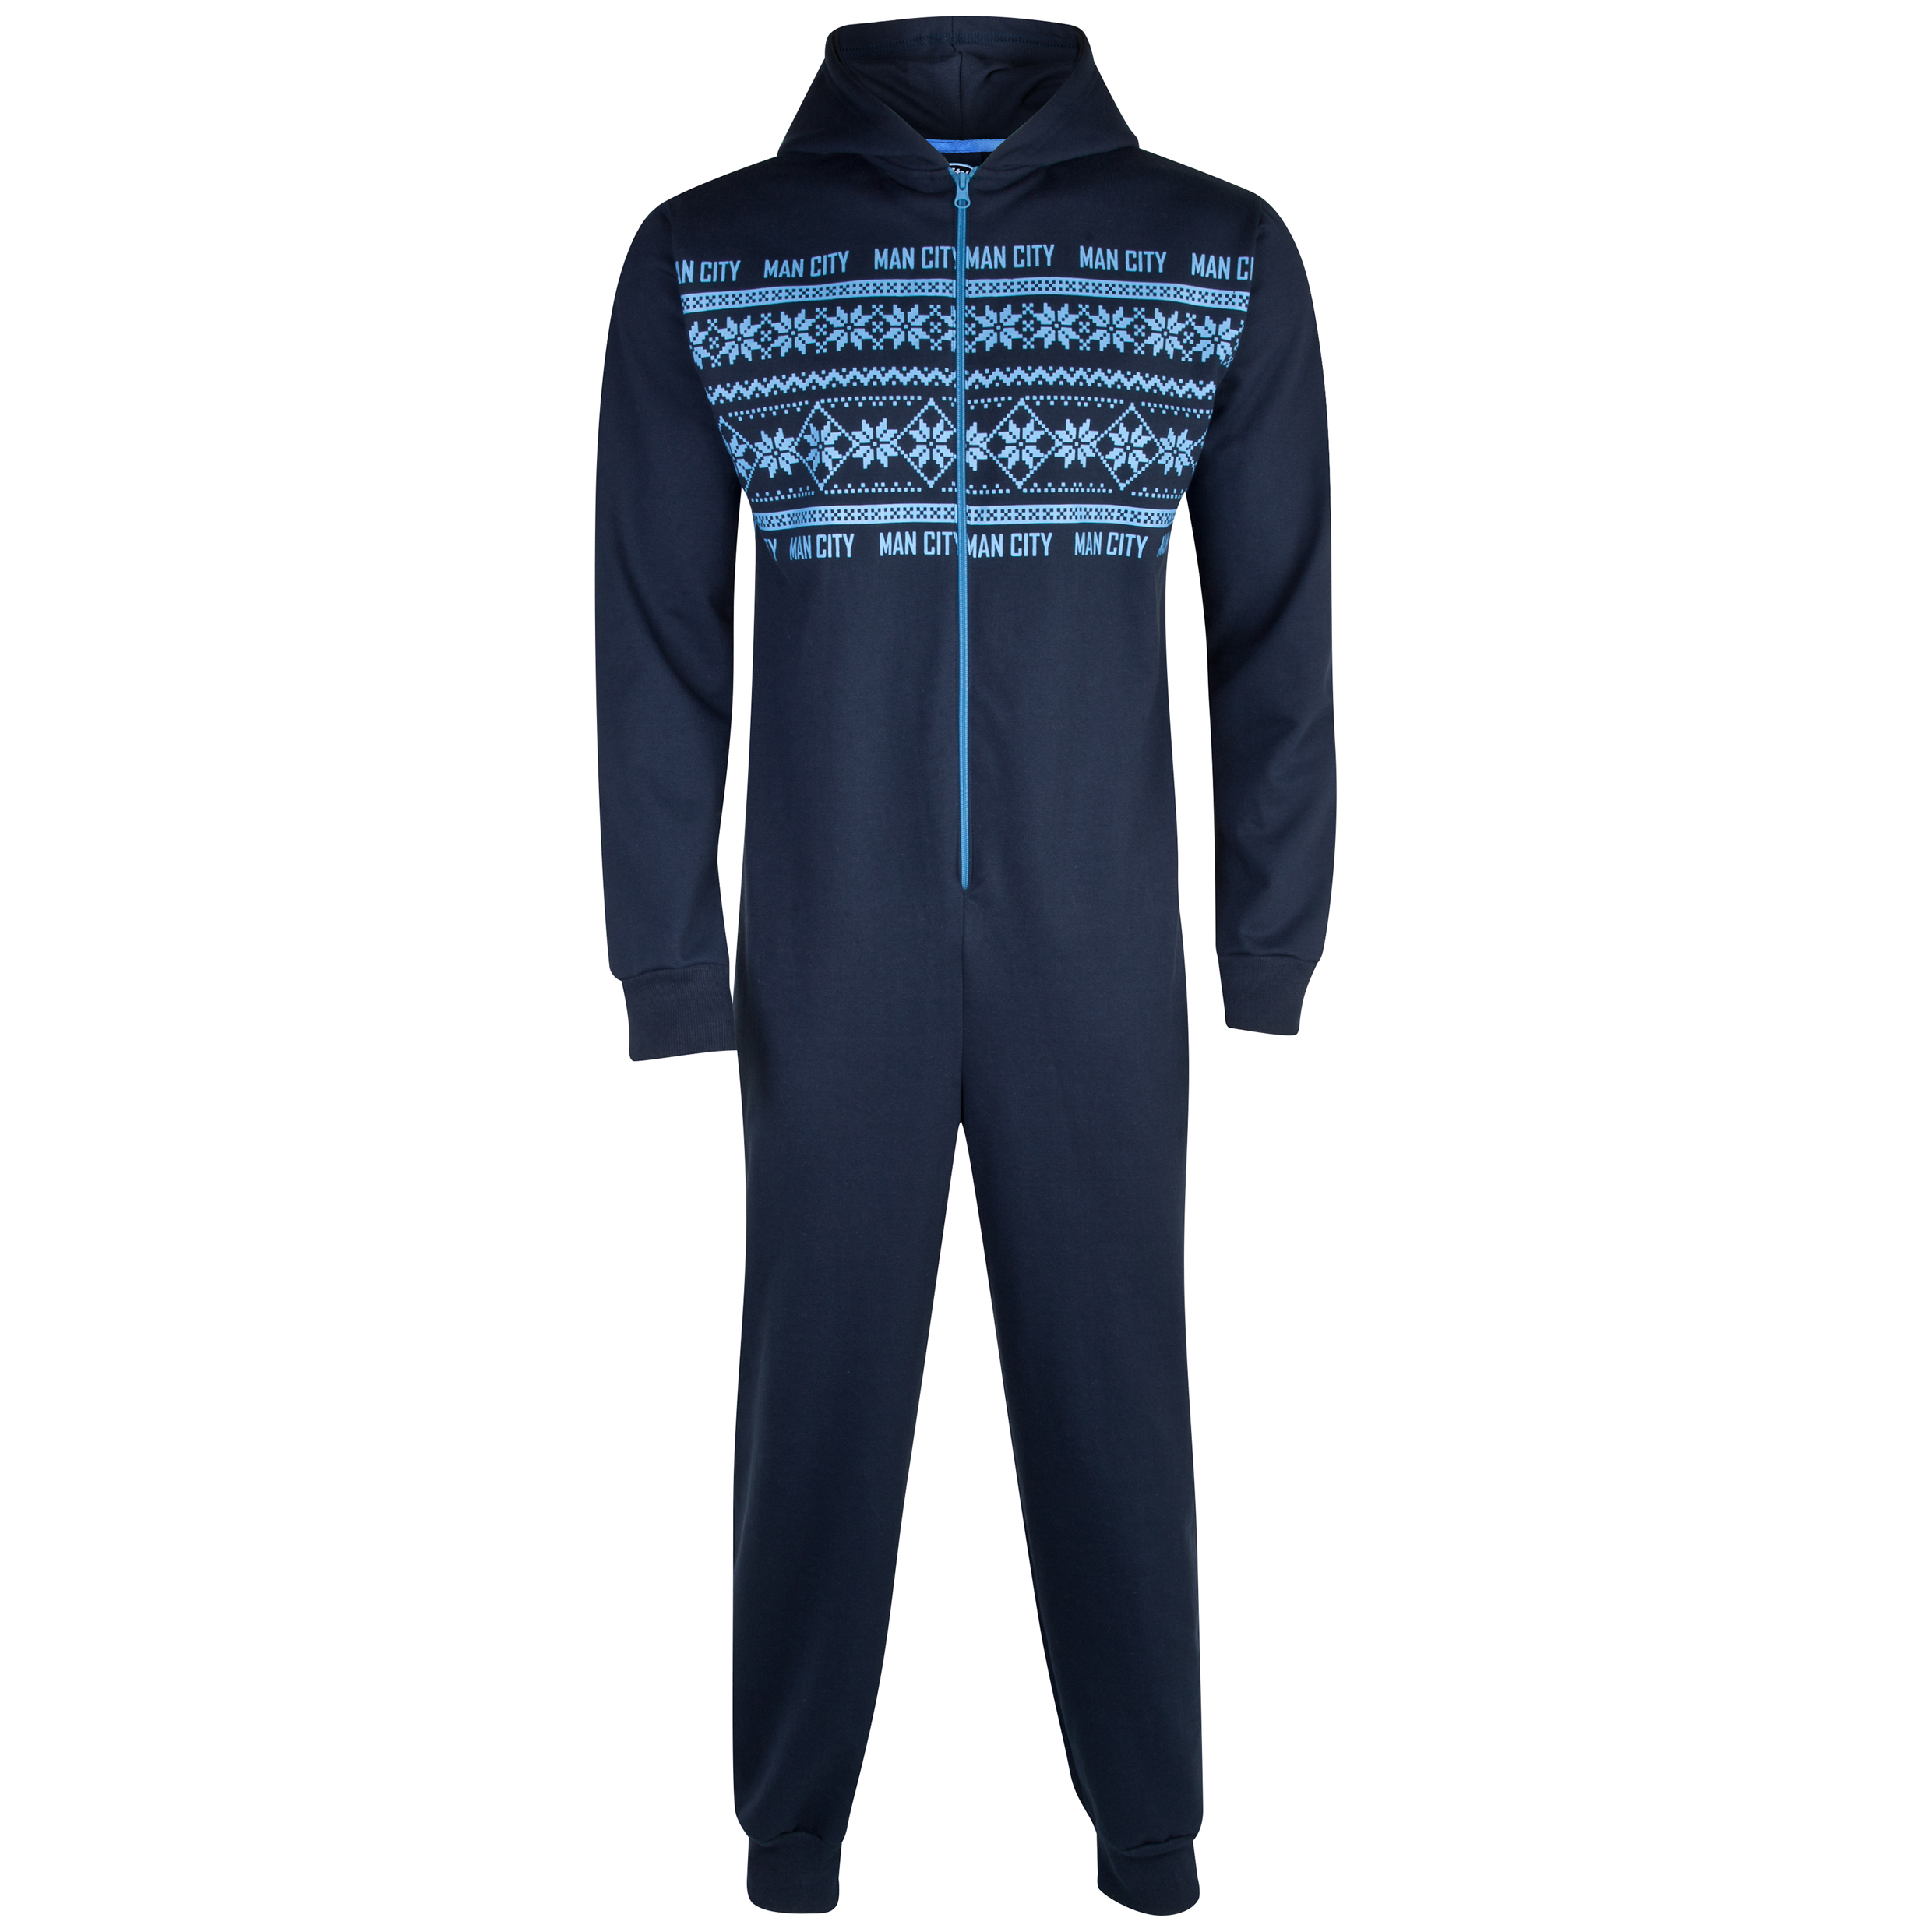 Manchester City Fairisle Onesie - Mens Navy